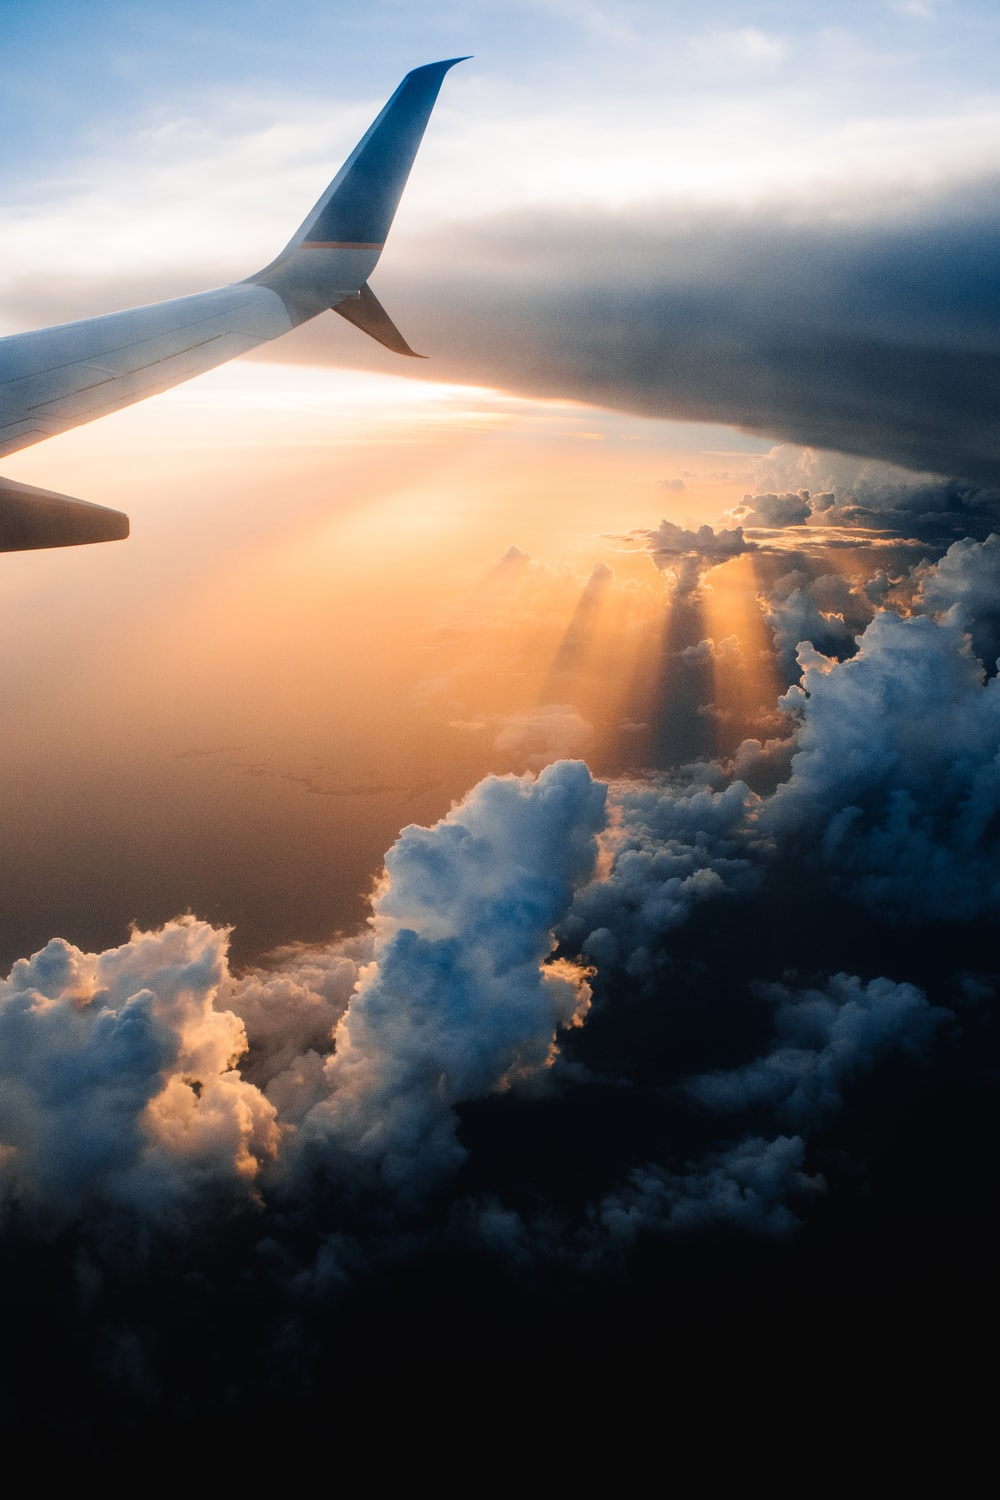 airplane on sky during golden hour